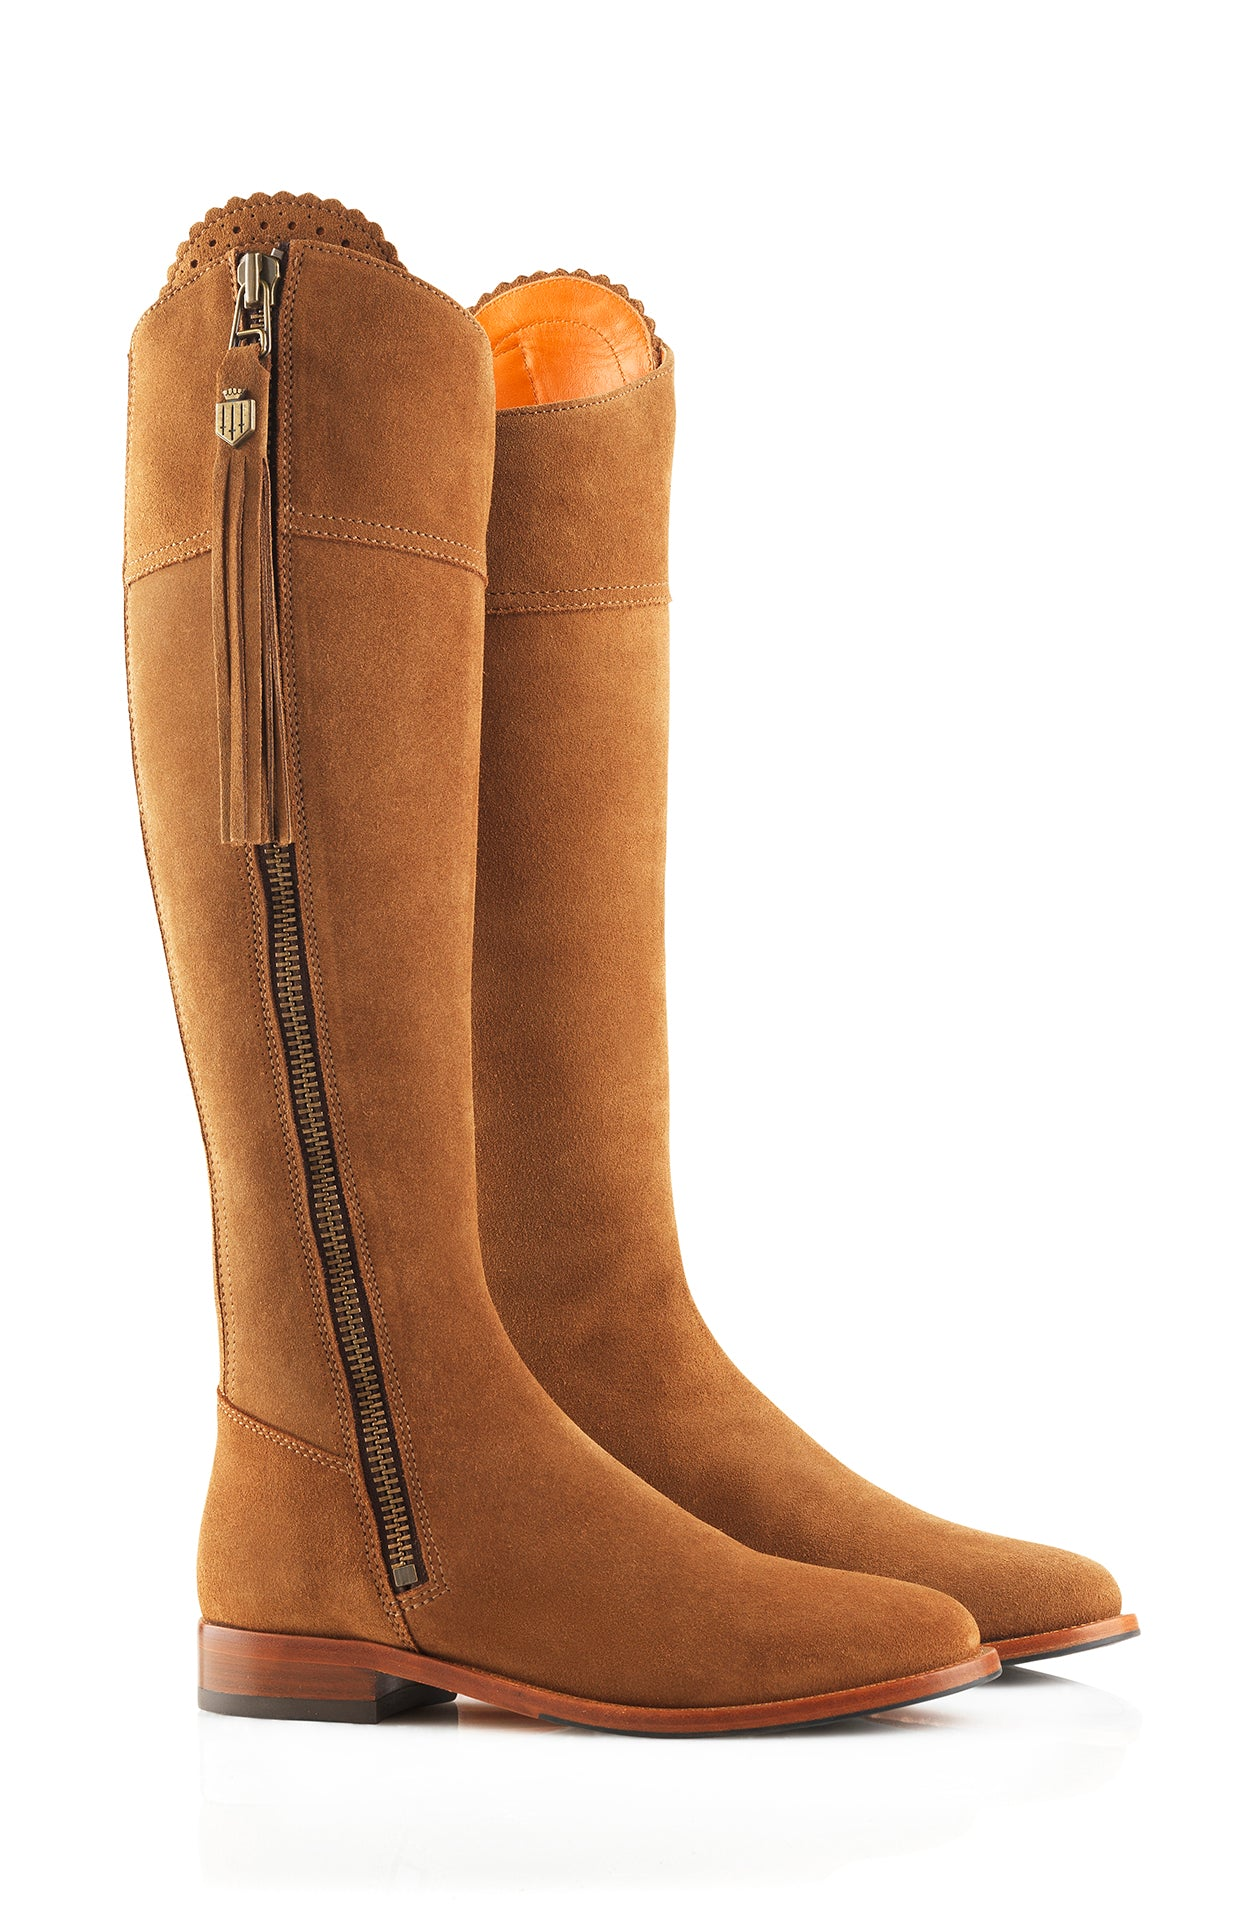 Fairfax and Favor Regina Heeled Boots for Ladies in Tan